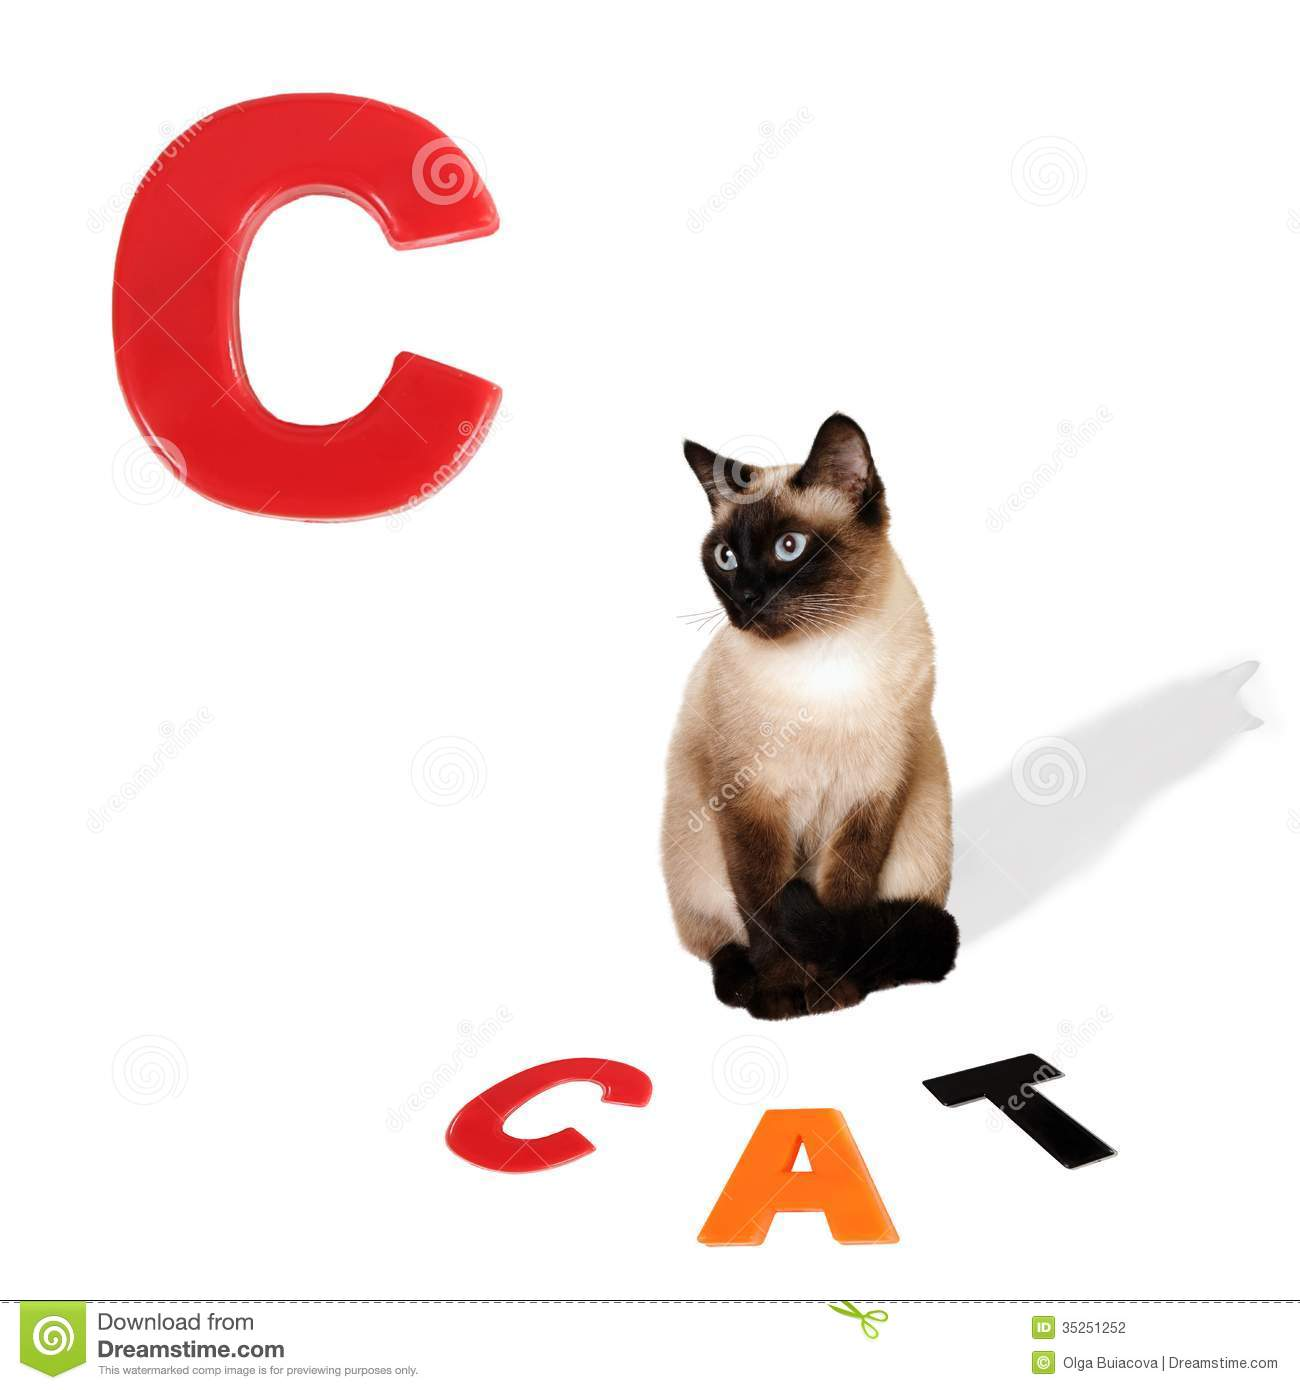 Illustrated Alphabet Letter C And Cat Stock Photo